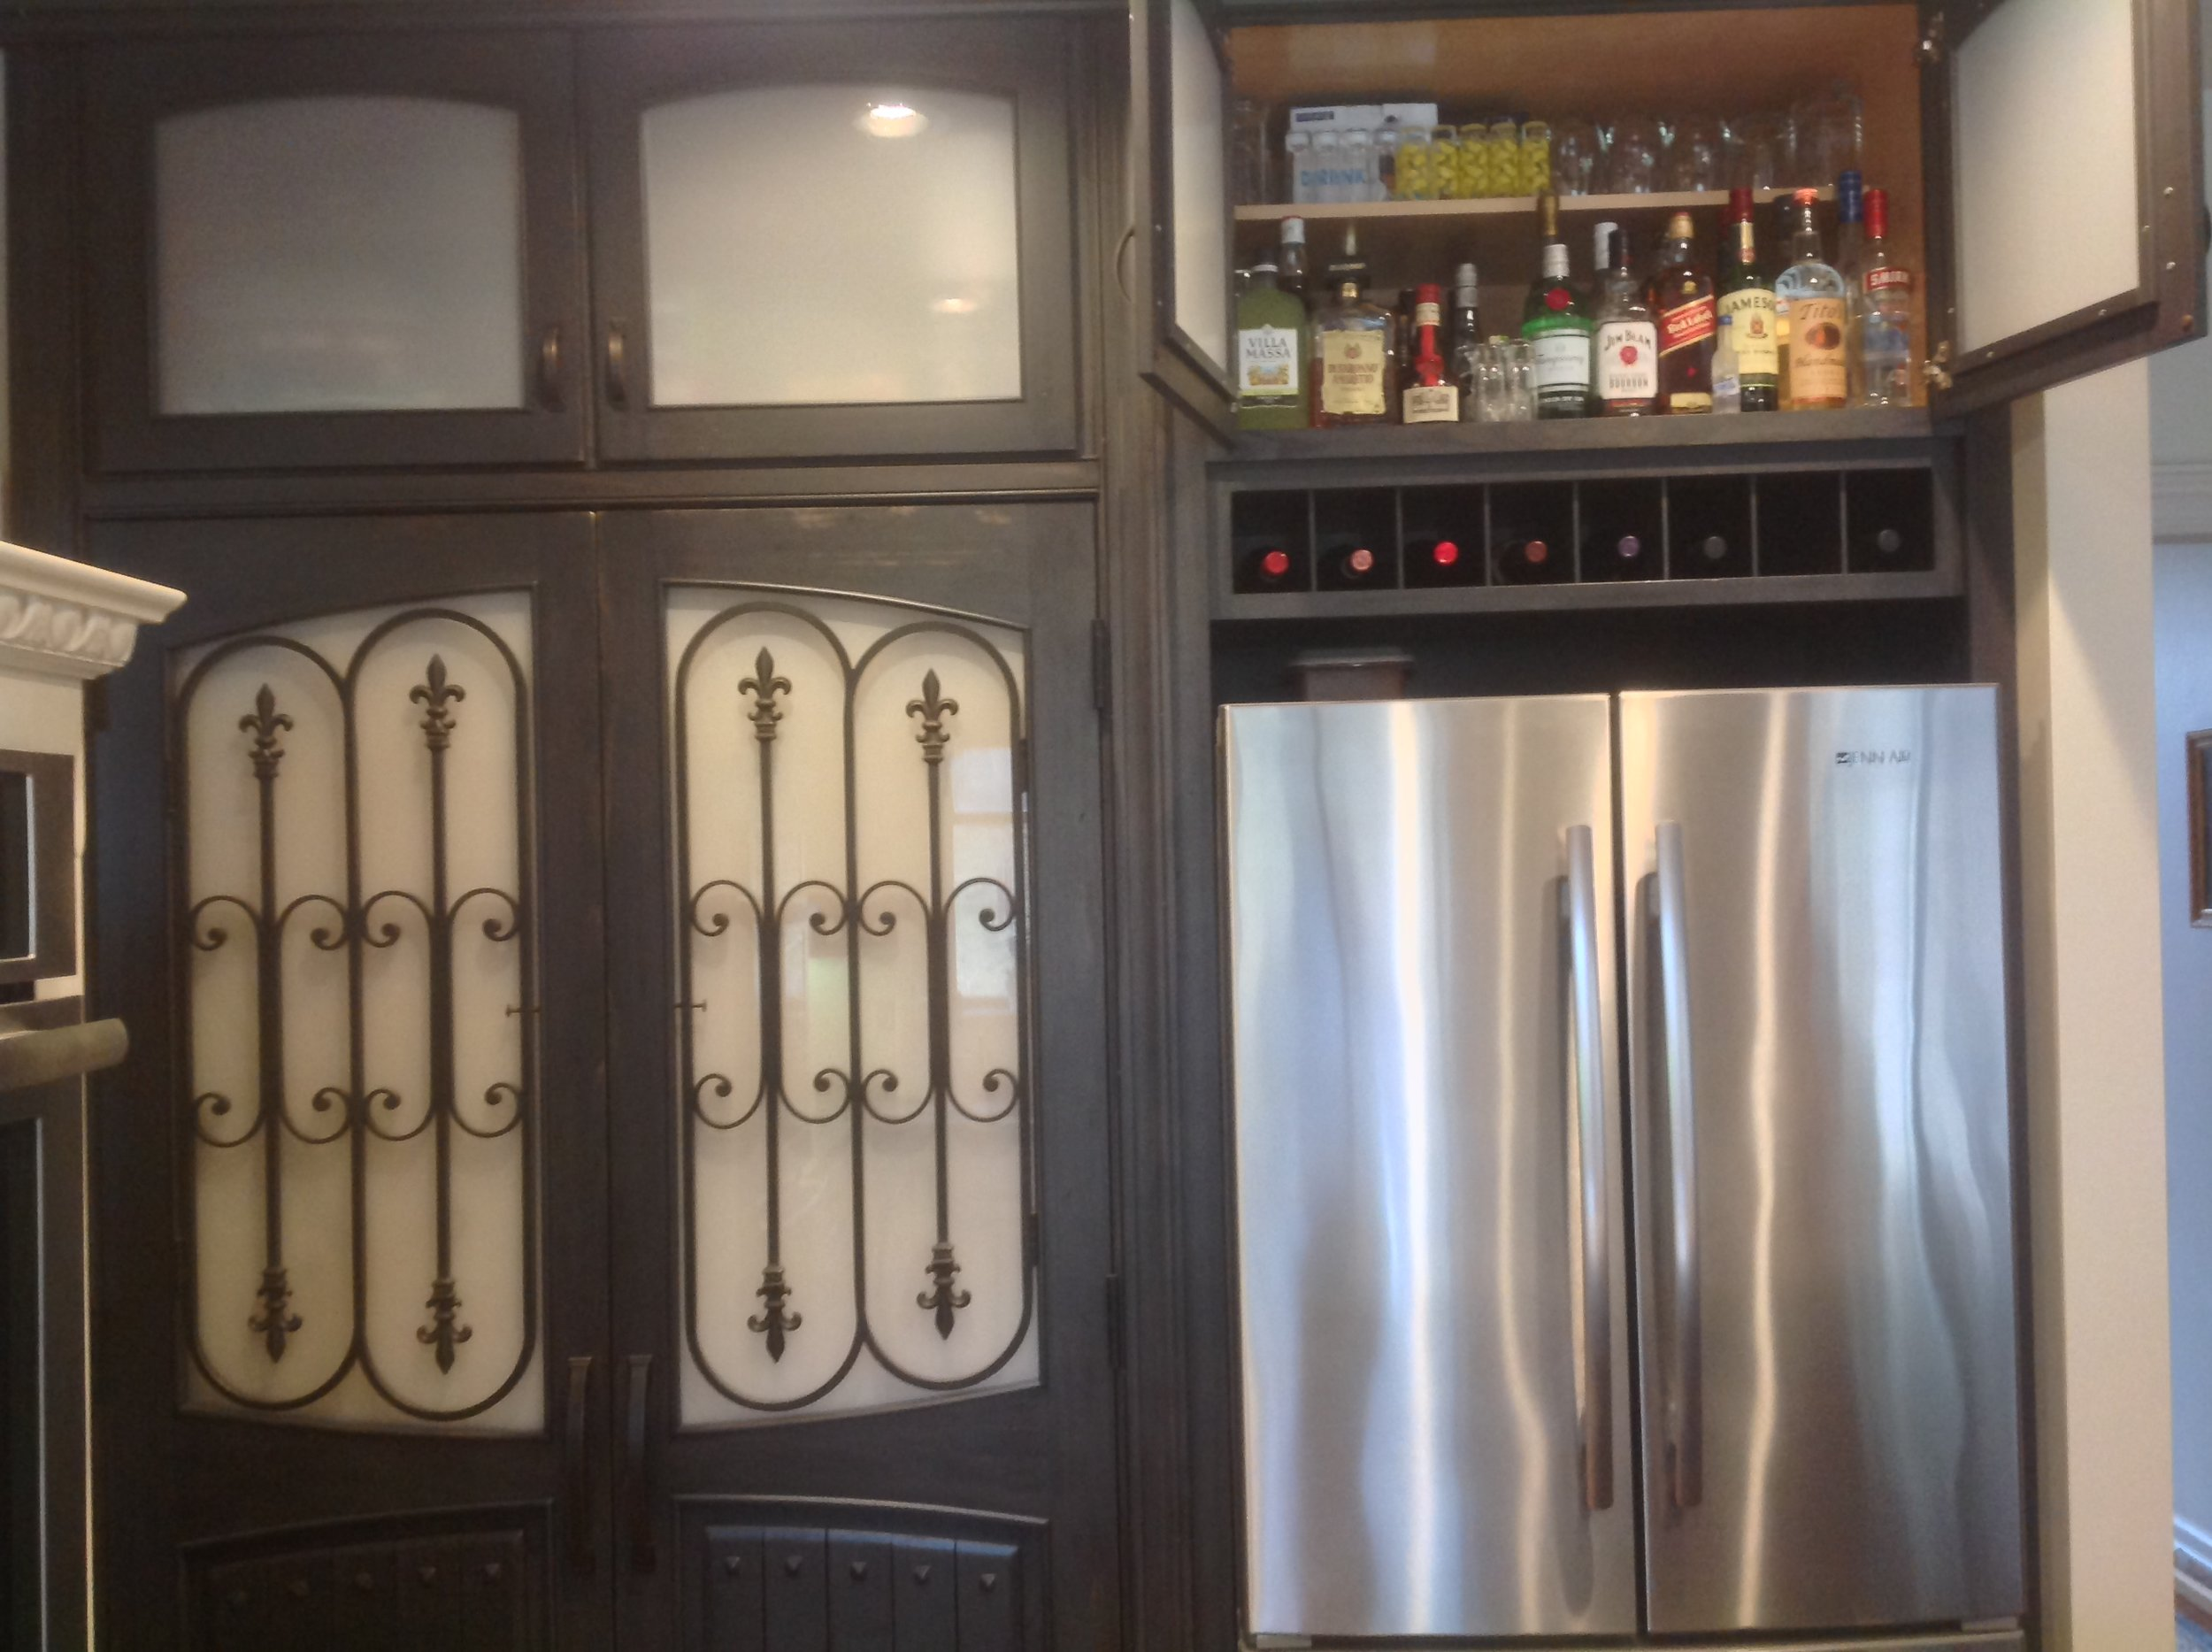 liquor and wine storage above refrigerator